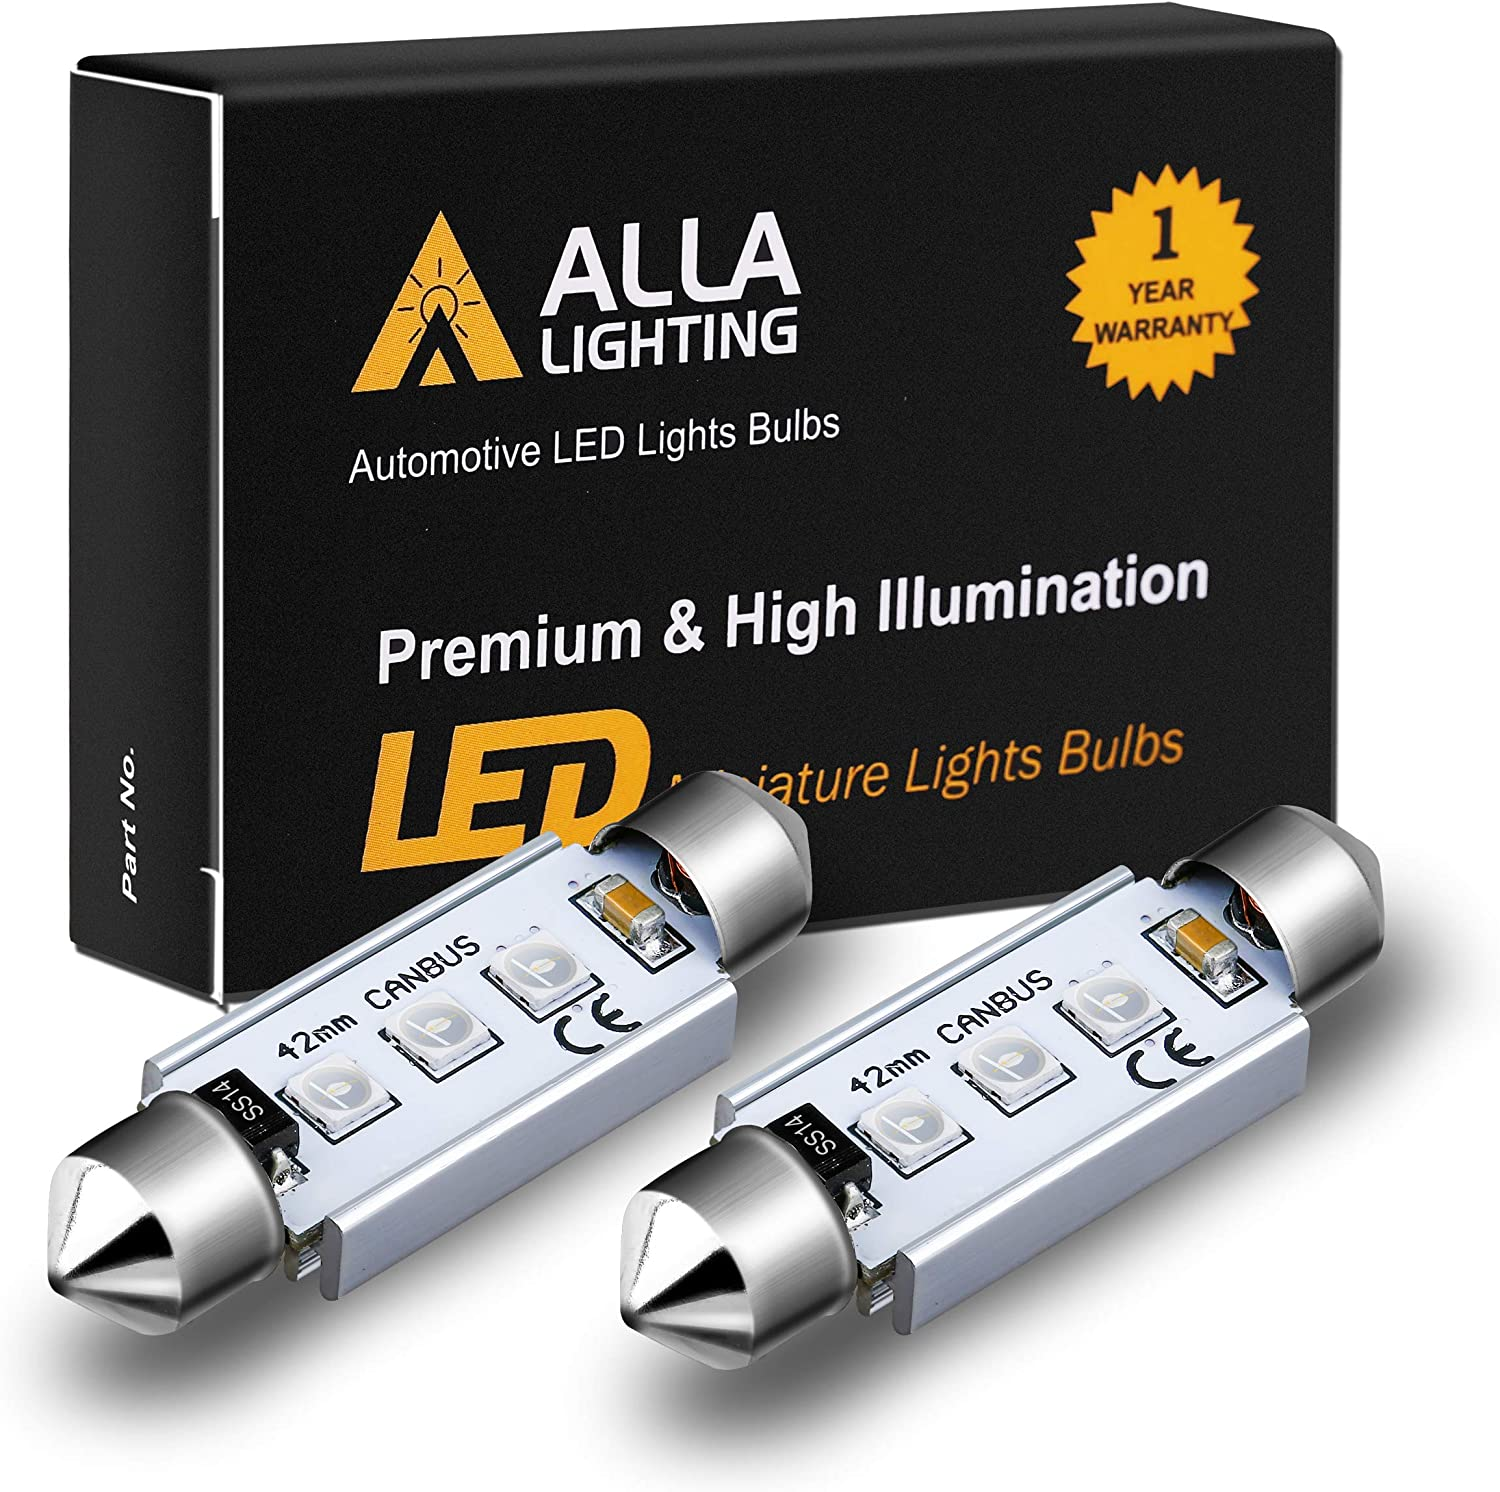 Alla Lighting CANBUS 211-2 578 LED Bulbs Super Bright 41mm 42mm Festoon 3030 SMD 212-2 569 6413 LED Lights Bulb for Interior Map, Dome, Trunk, Step Courtesy, License Plate Lights, Ultra Green